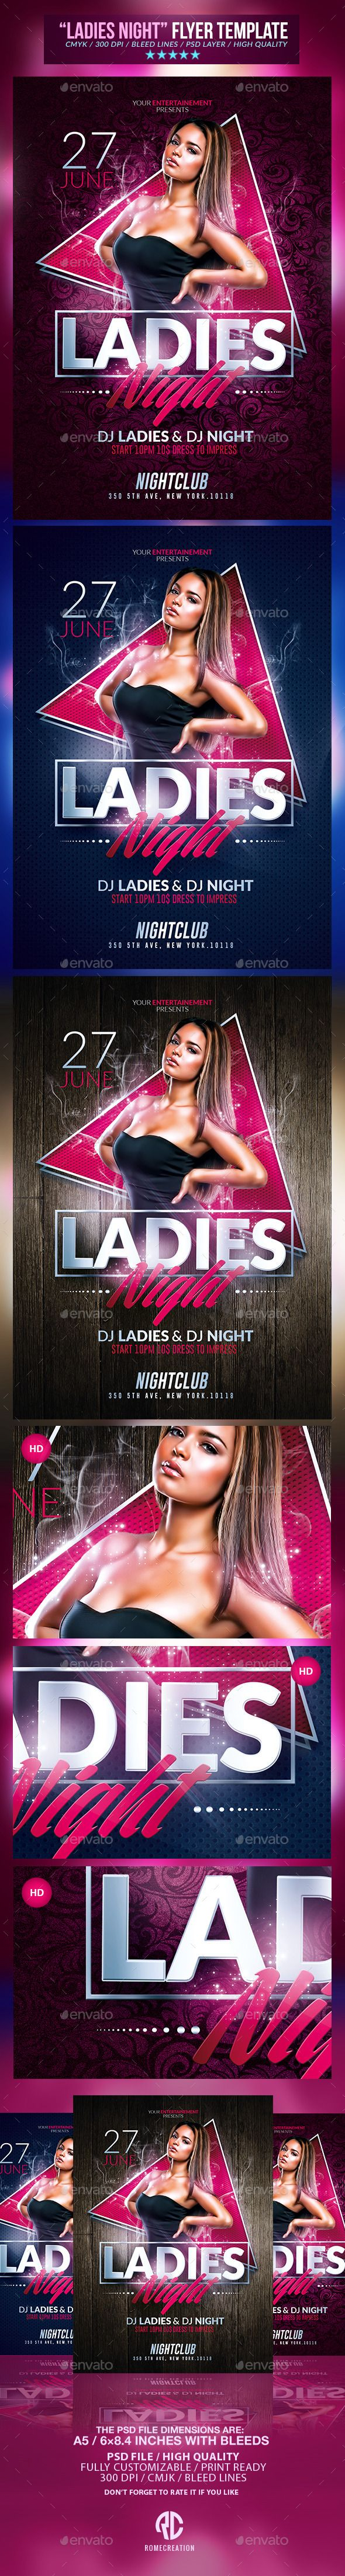 Ladies Night Party | Psd Flyer Templates #design Download: http://graphicriver.net/item/ladies-night-party-psd-flyer-templates-/11280671?ref=ksioks